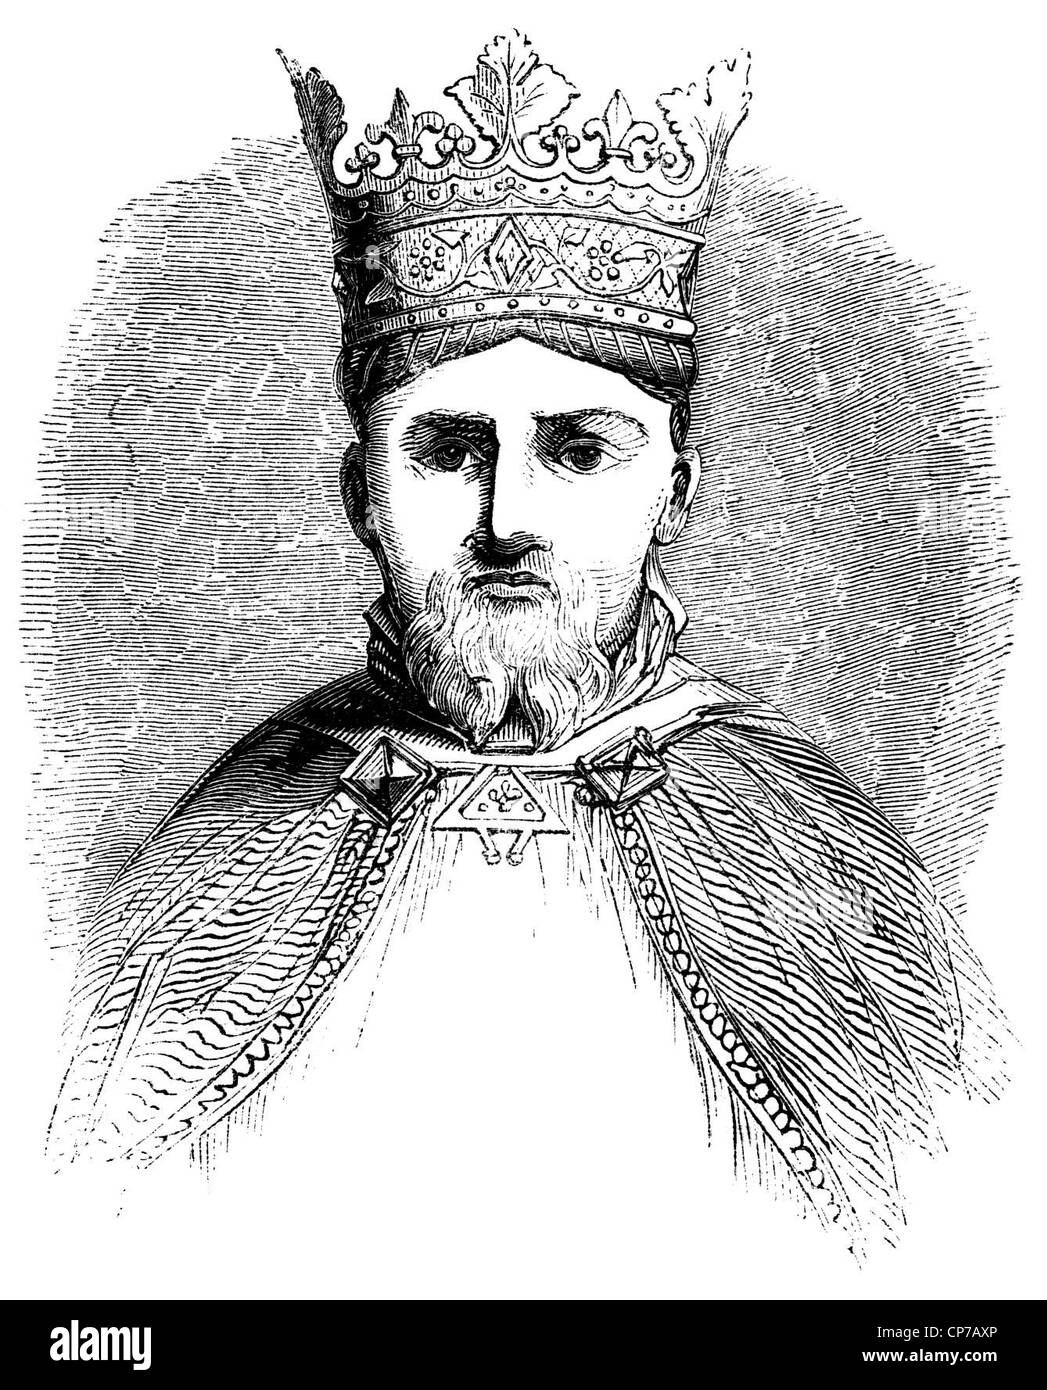 Engraving of Henry IV of England with white background. - Stock Image